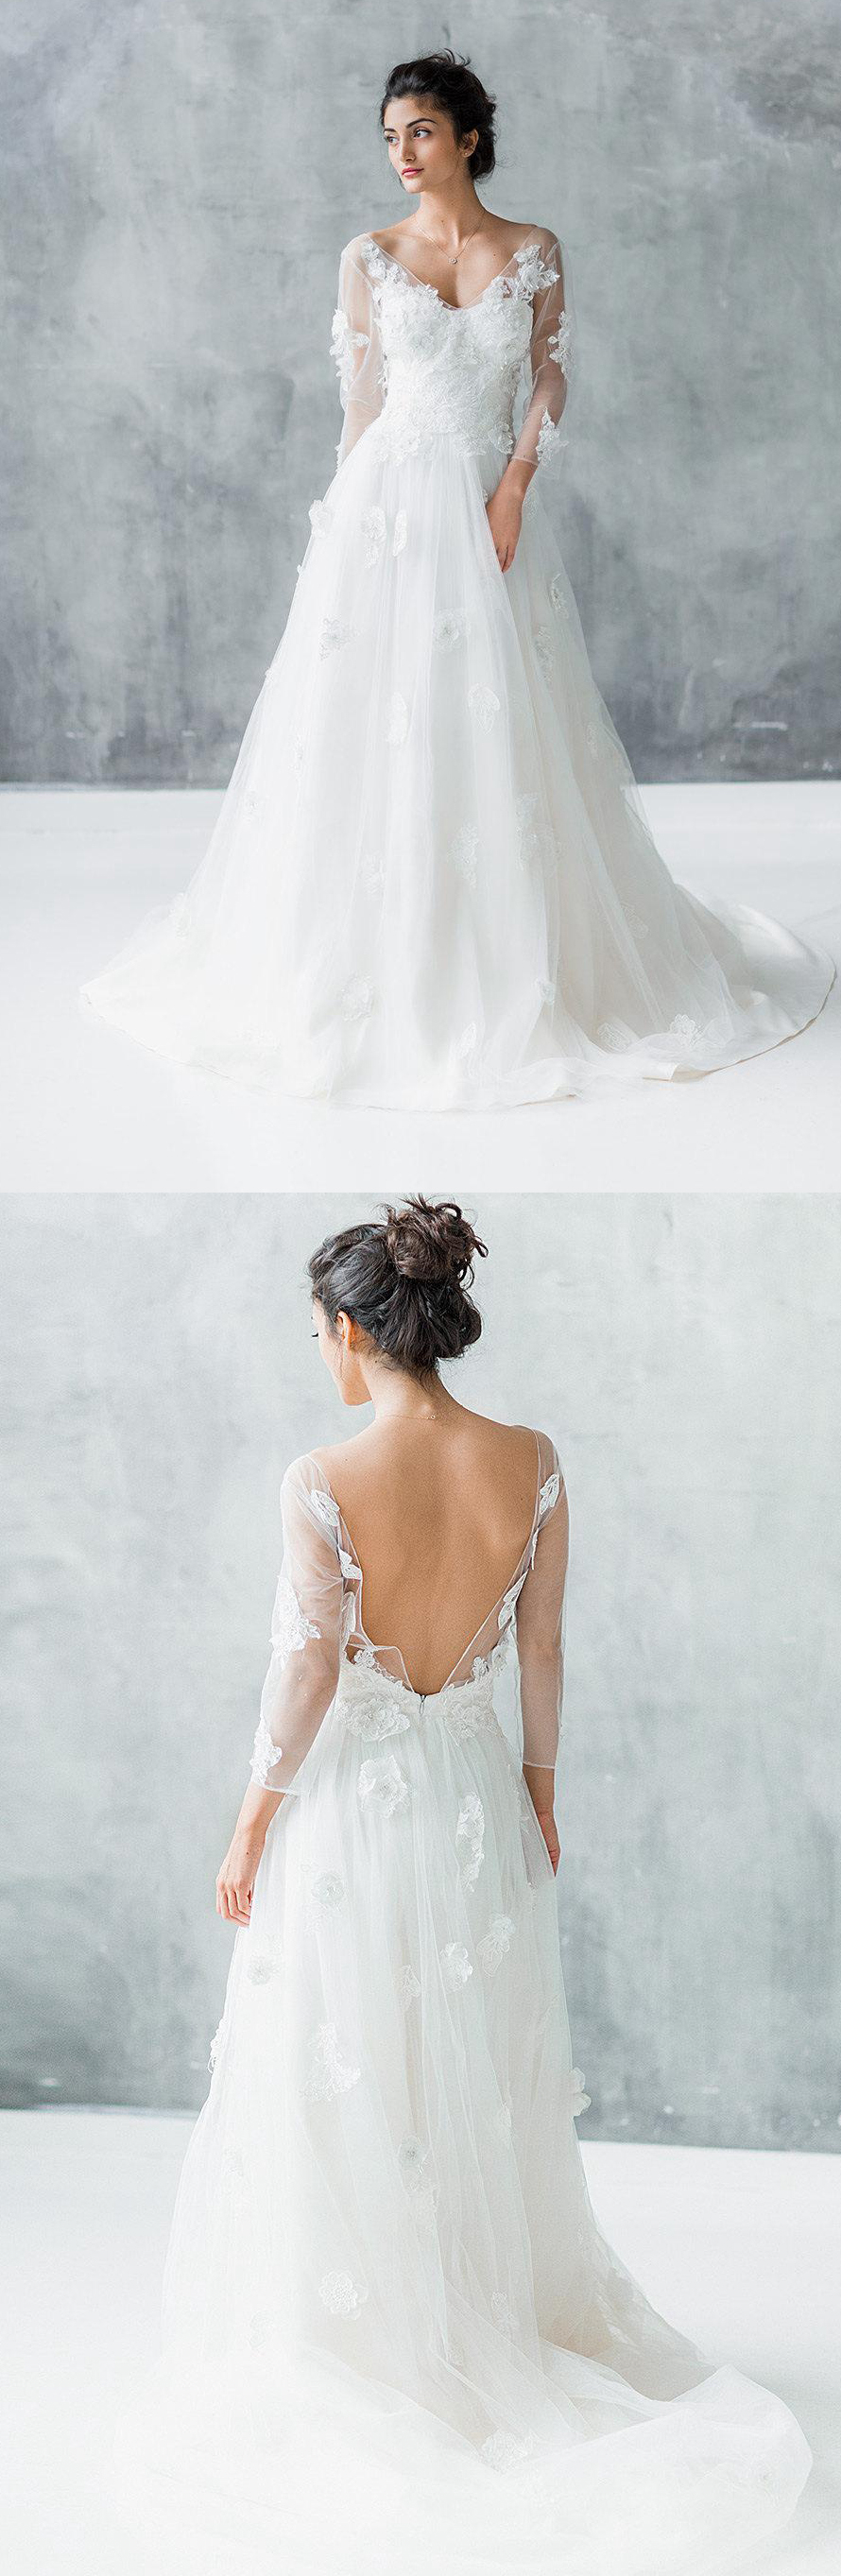 Long sleeve wedding dress lace  Pin by June Bridals on Long Sleeve Wedding Dresses  Pinterest